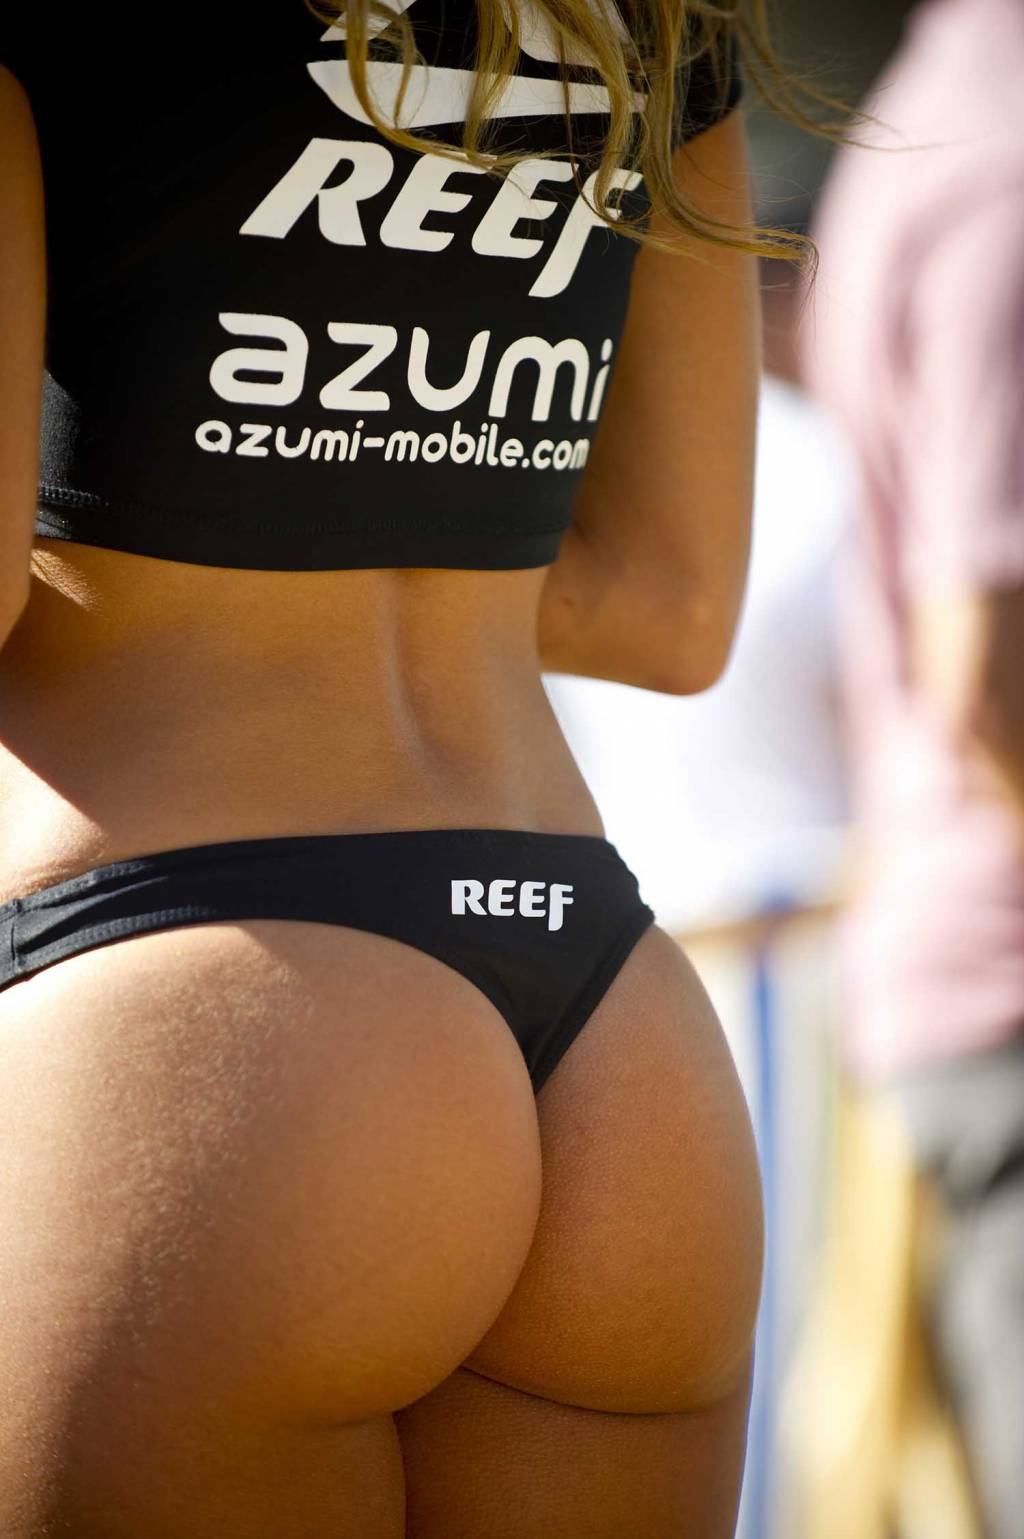 Miss Reef 2012 Bikini Contest